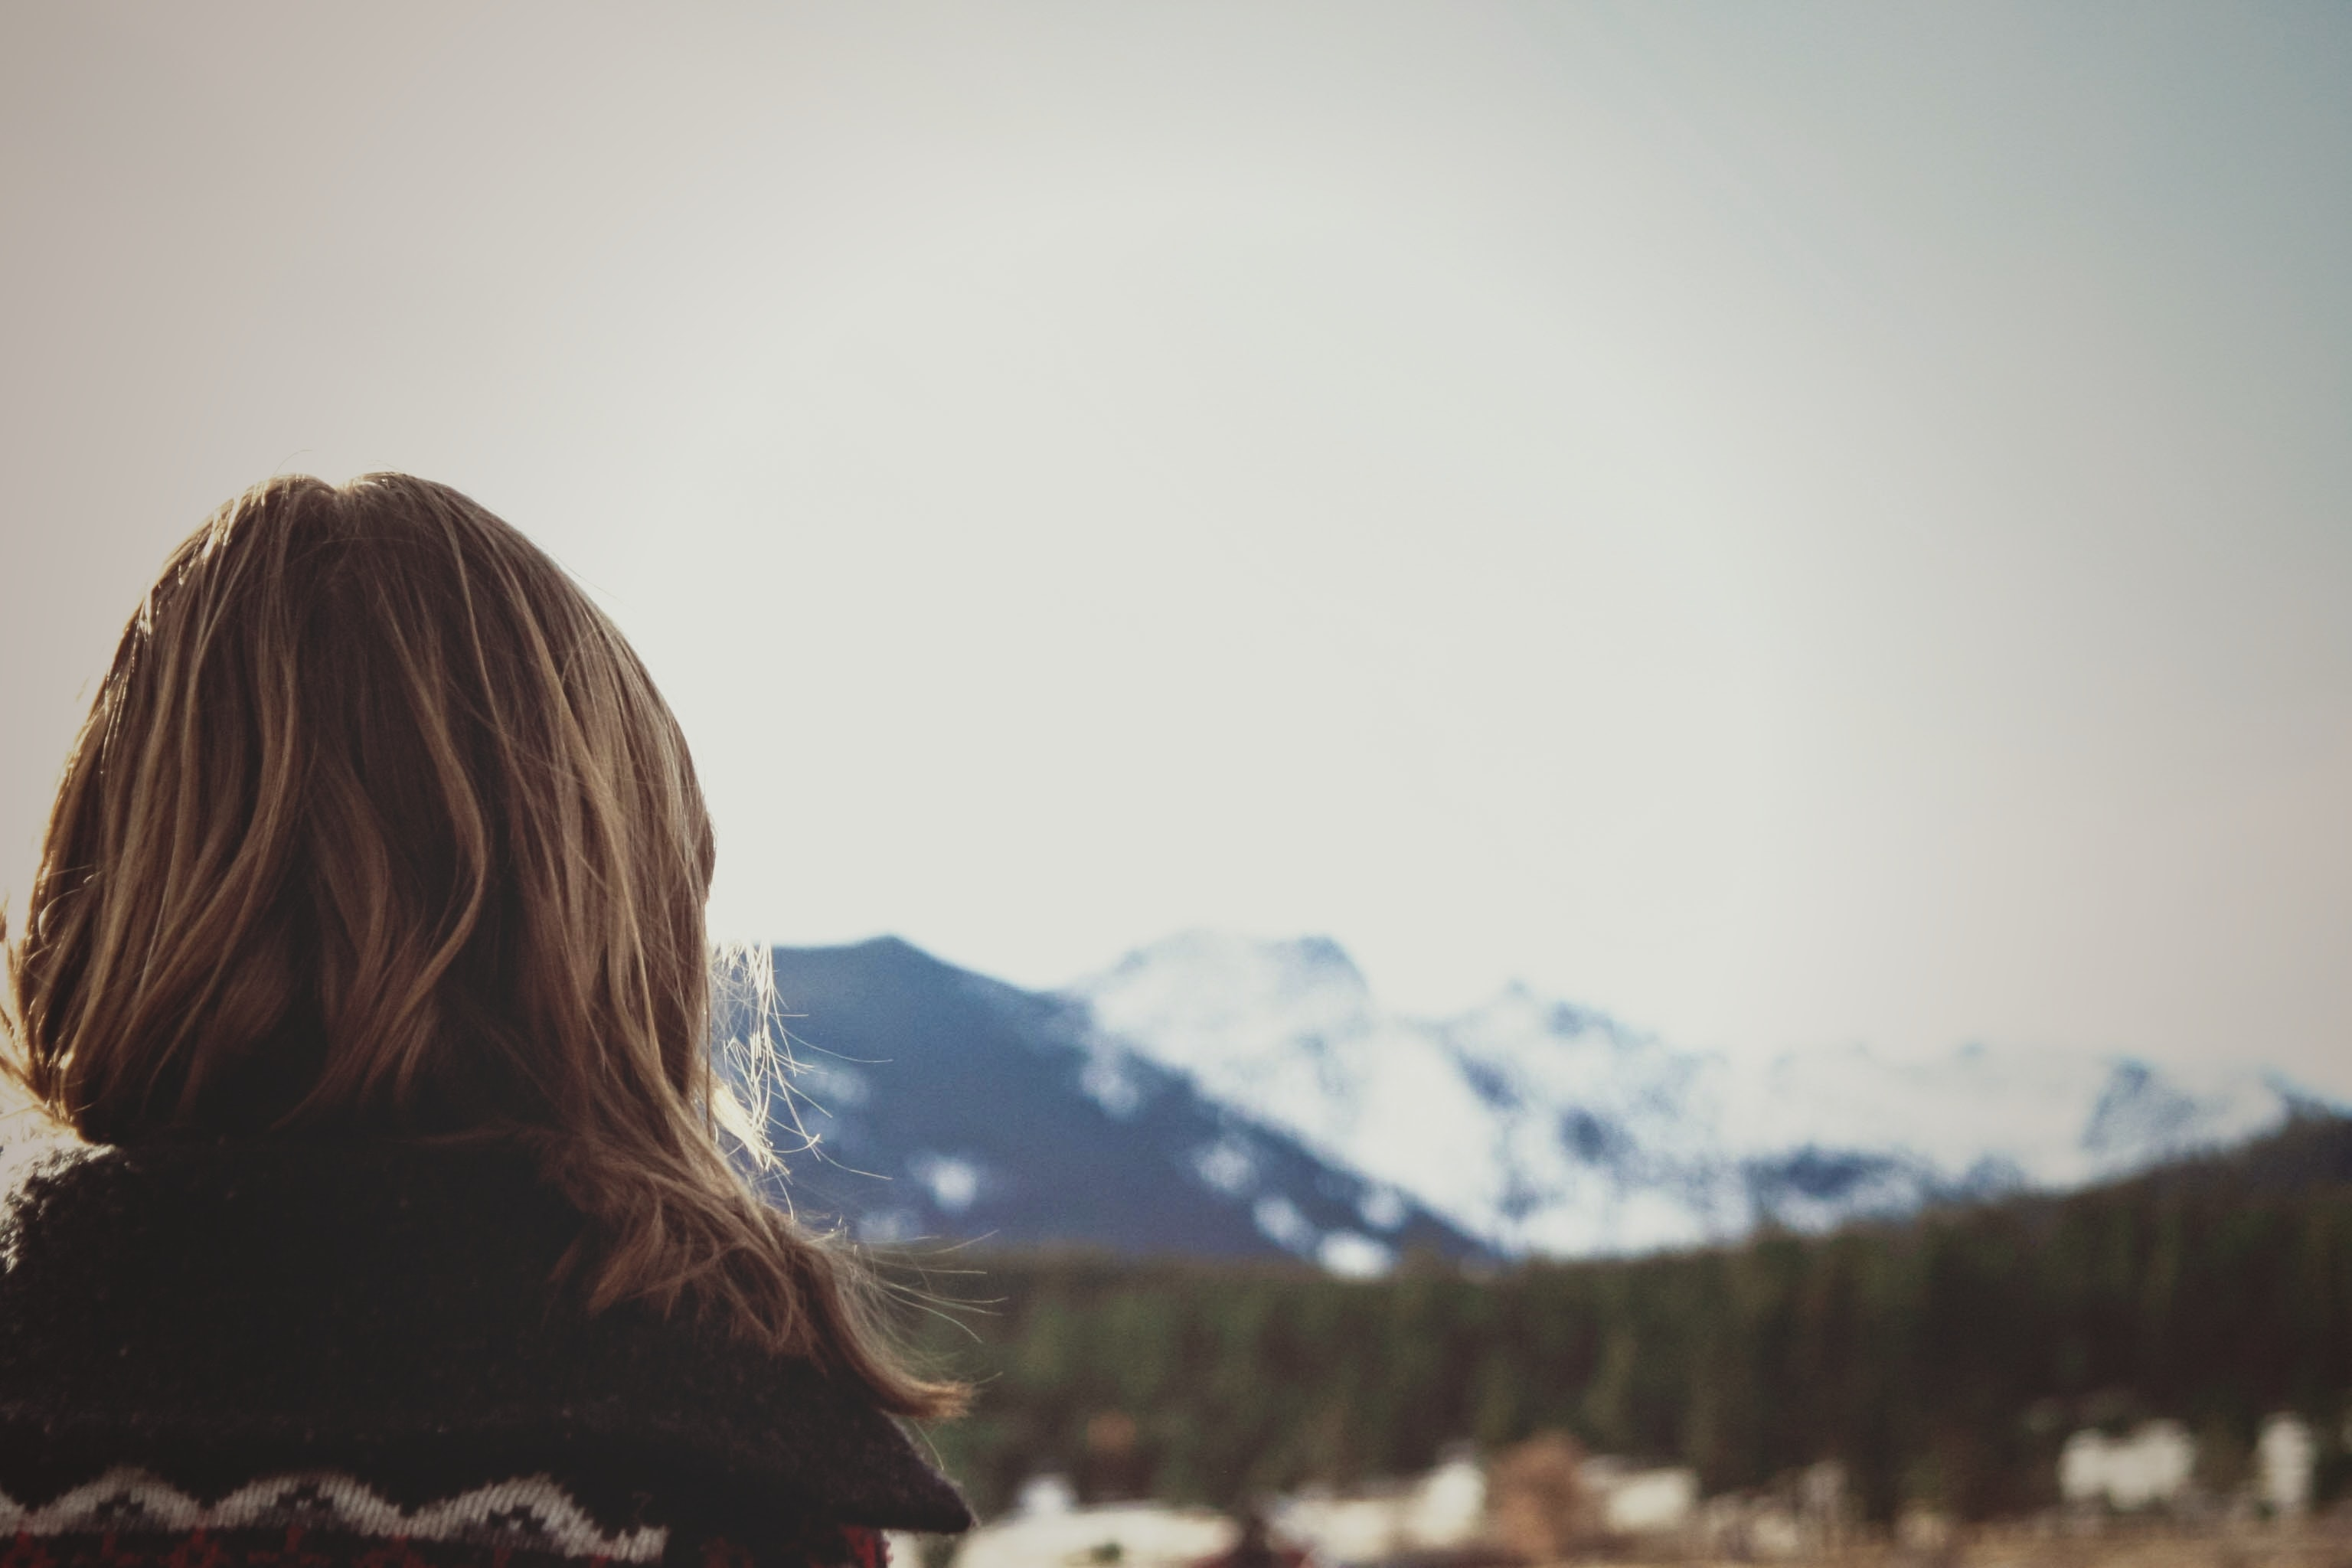 A blonde woman in a sweater looking at the distant snow-capped mountains